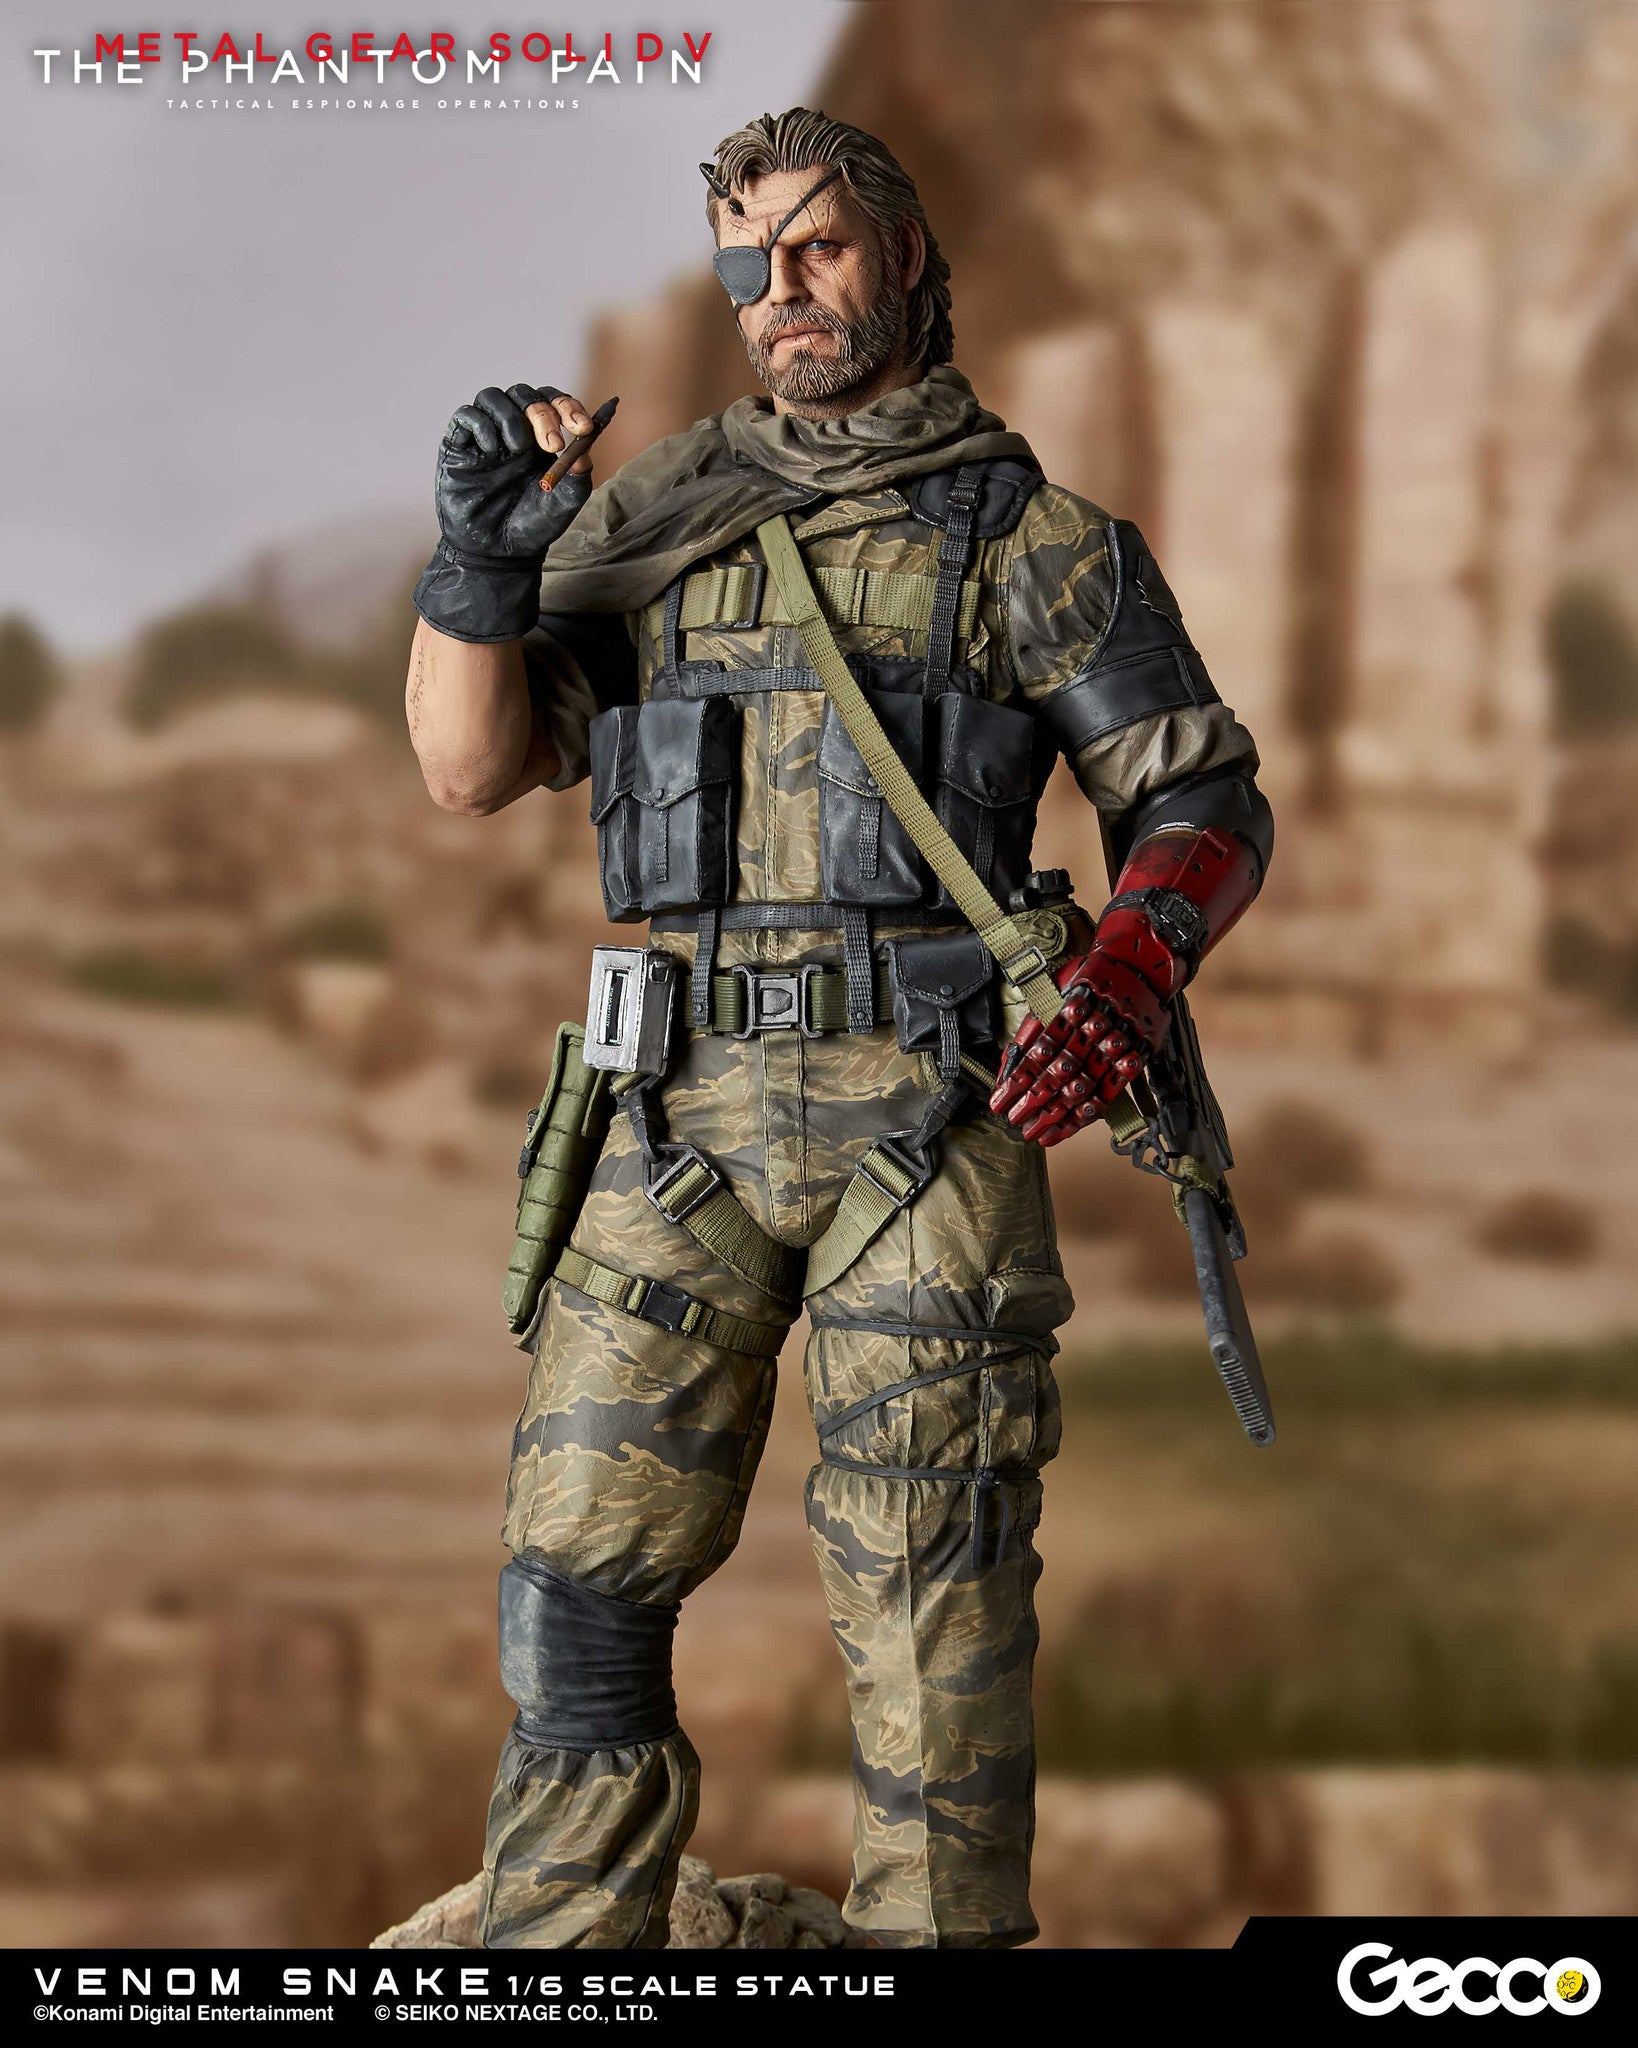 Gecco - Metal Gear Solid V: The Phantom Pain - Venom Snake 1/6 Scale Statue - Marvelous Toys - 1